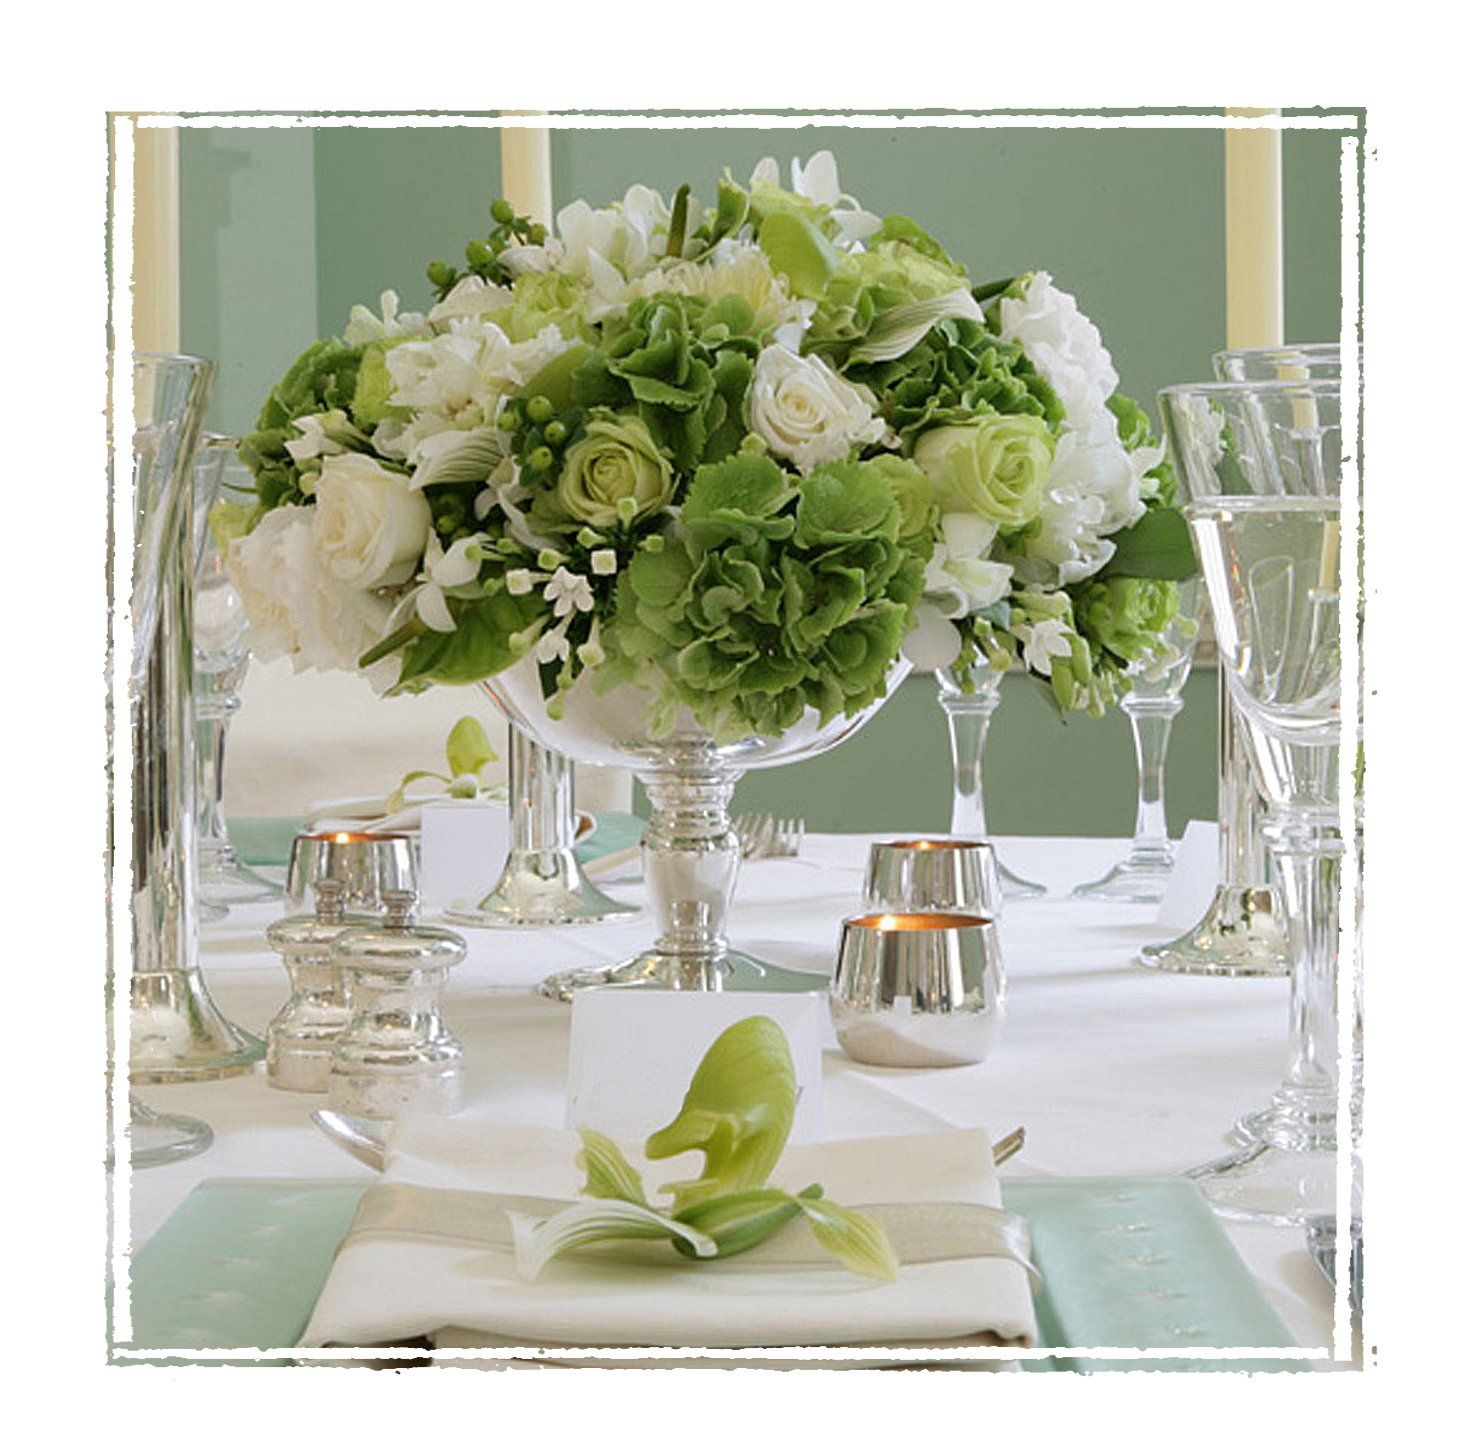 Green white and silver Christmas flowers  sc 1 st  Pinterest & Green white and silver Christmas flowers | Holiday | Pinterest ...